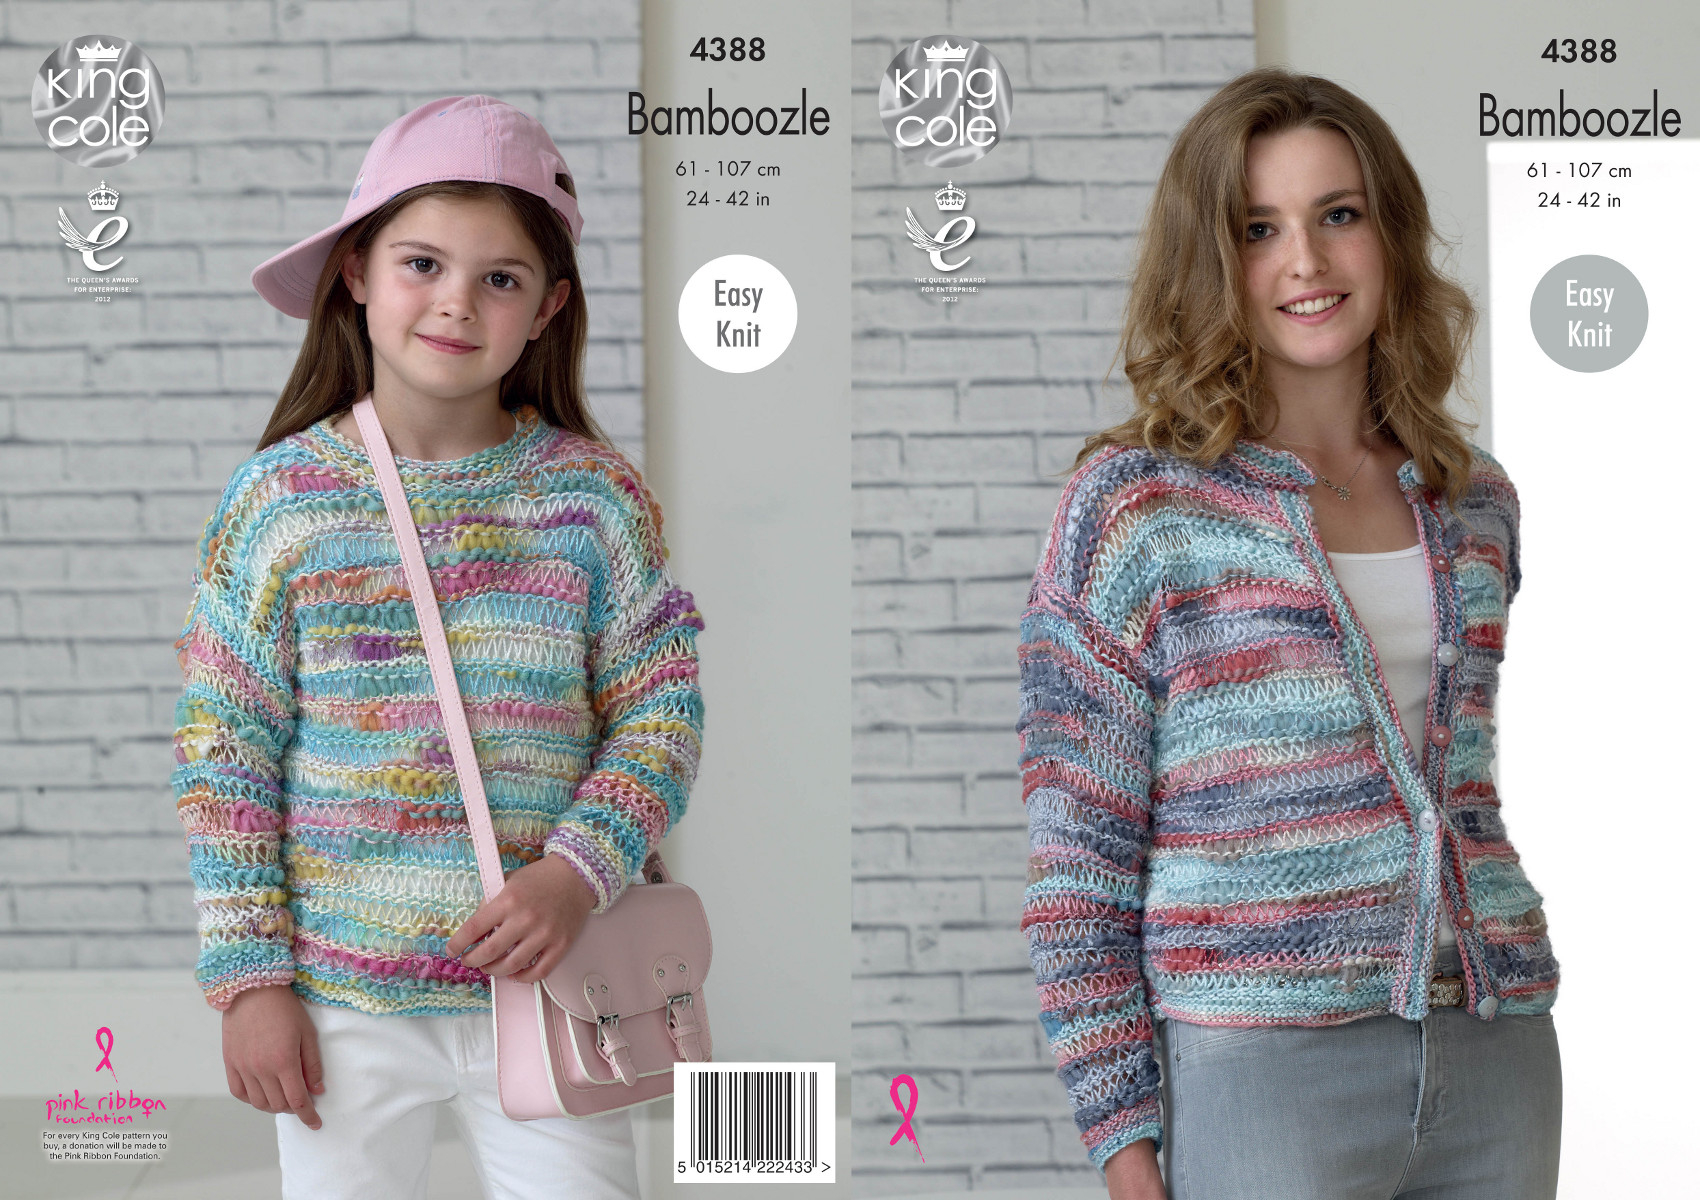 Easy Jumper Knitting Pattern Details About Easy Knit Jumper Cardigan Knitting Pattern Womens Girls King Cole Bamboozle 4388